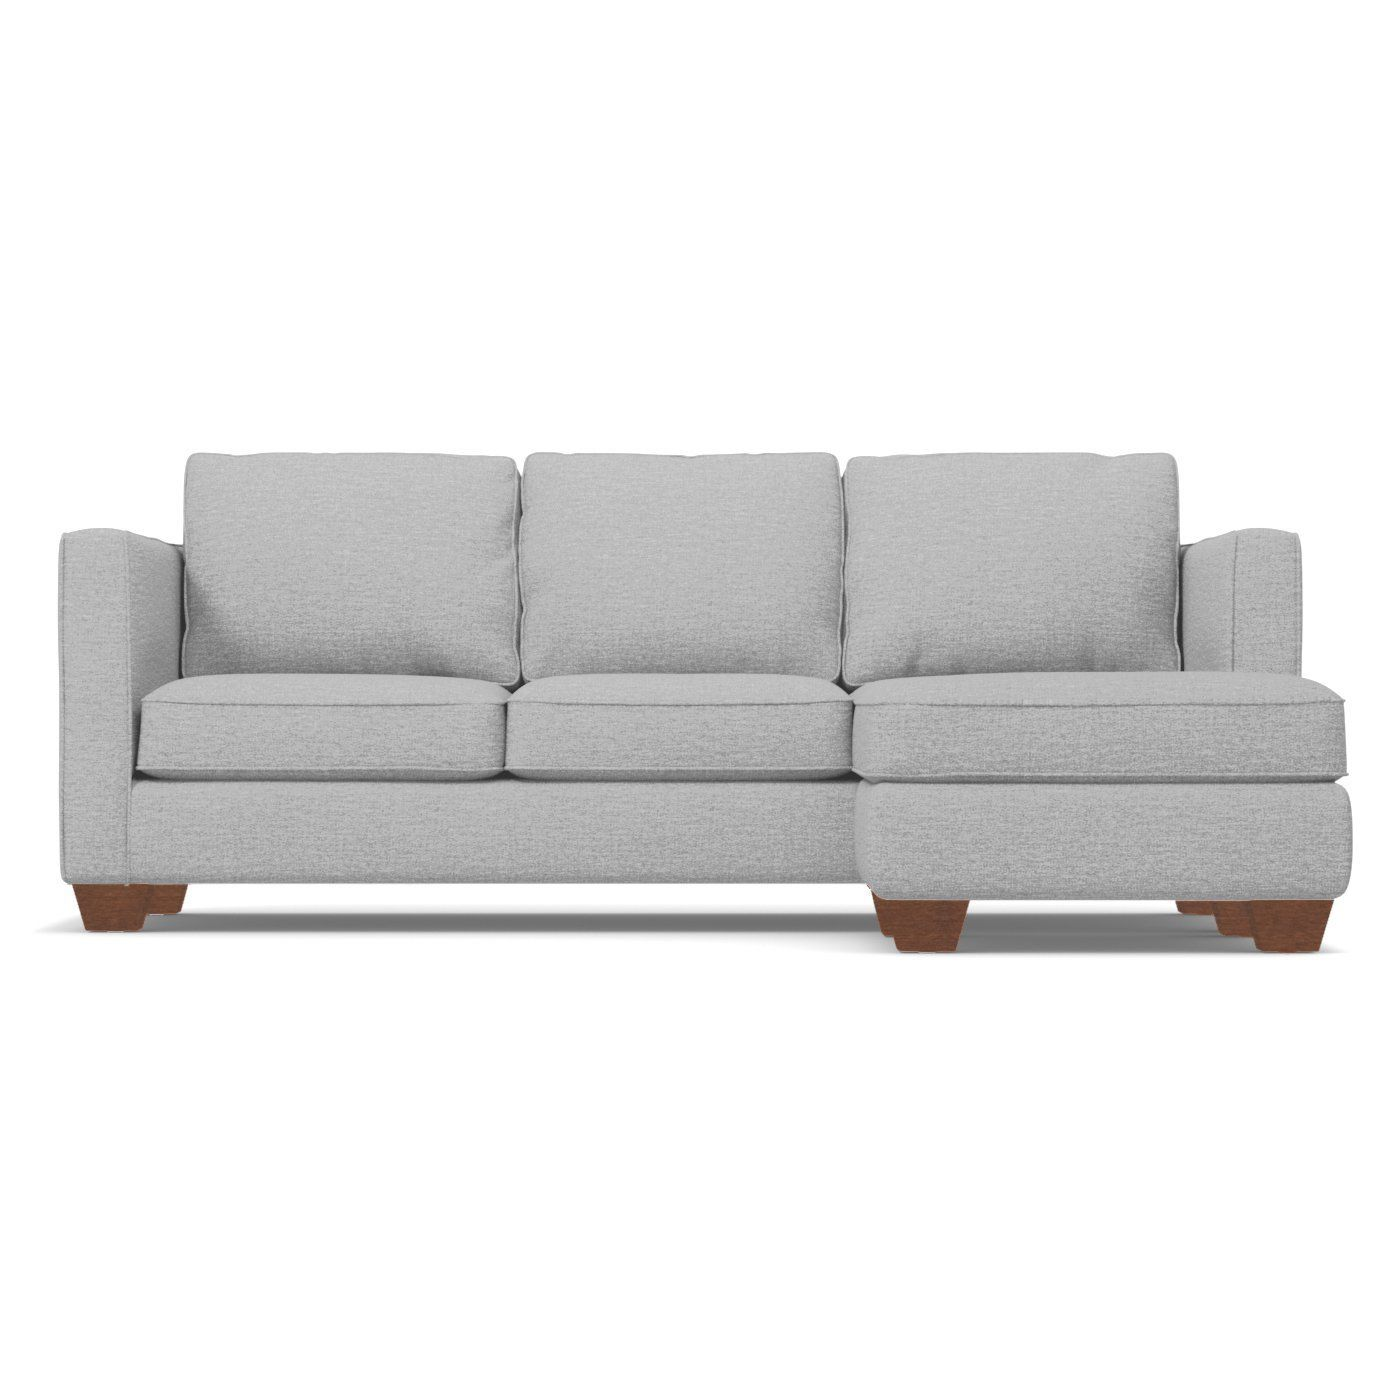 Catalina Reversible Chaise Sofa In Silver Chaise Sofa Sleeper